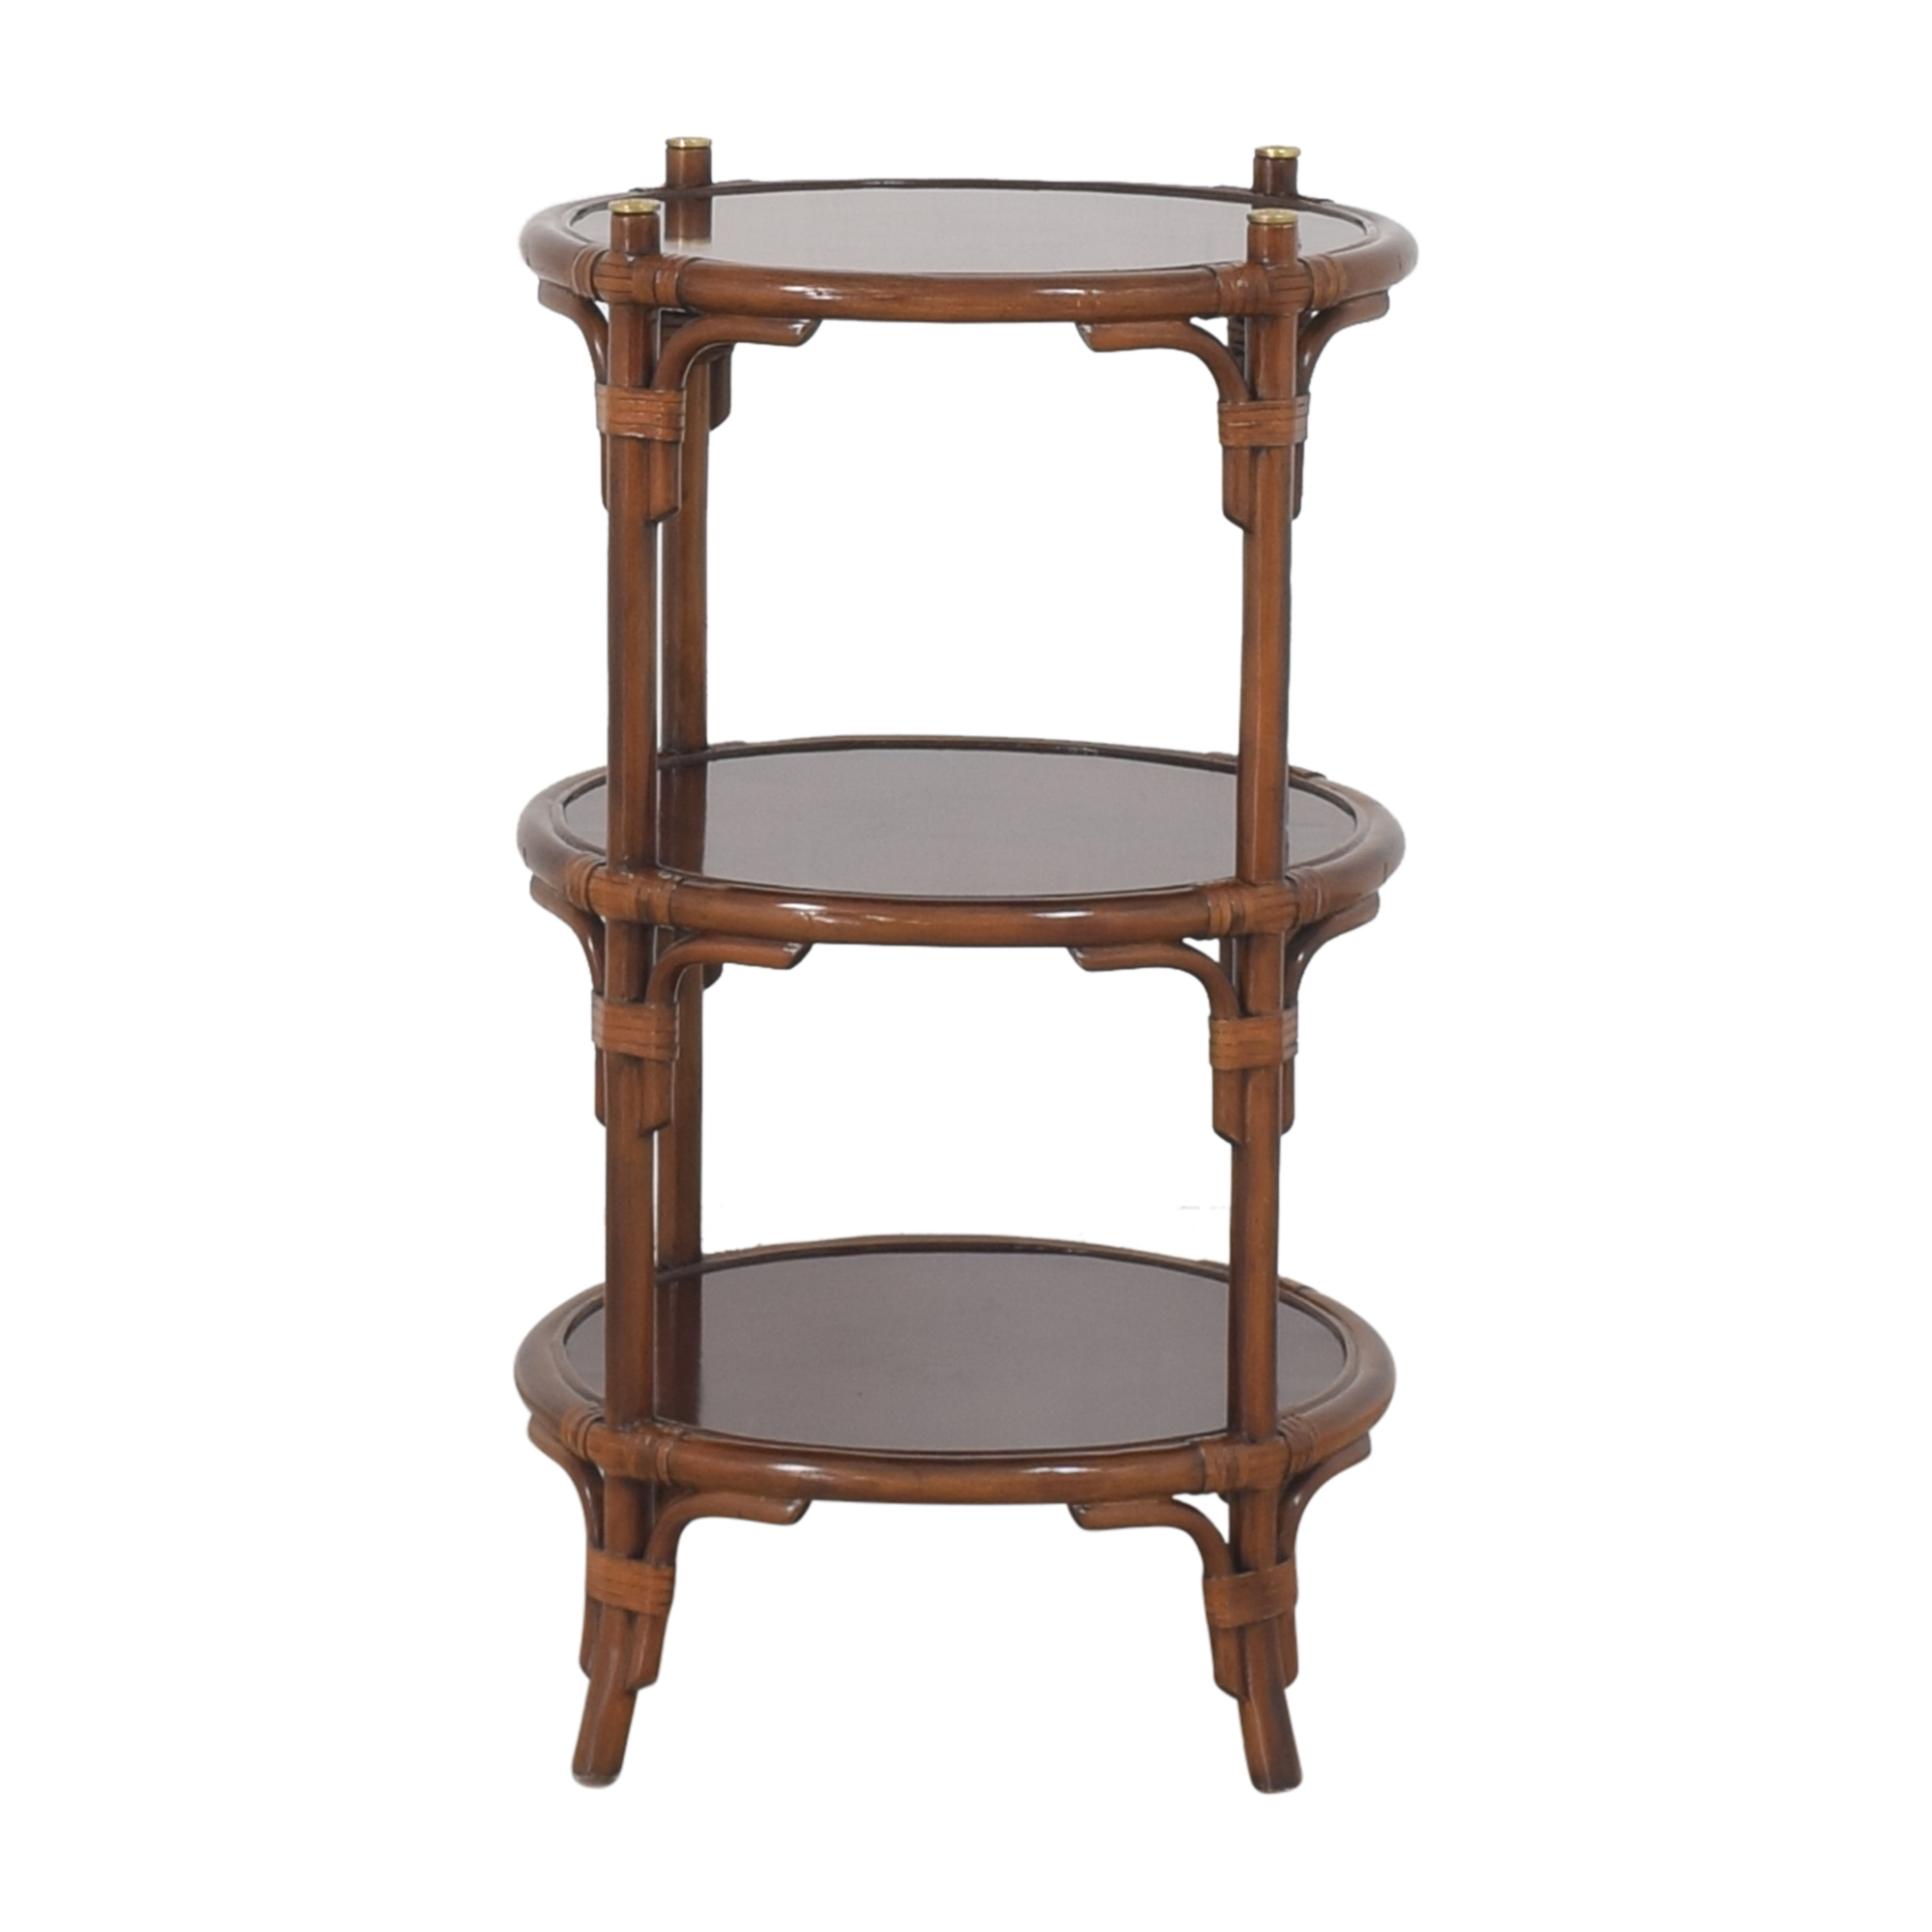 Maitland-Smith Maitland-Smith Three Tier Side Table for sale